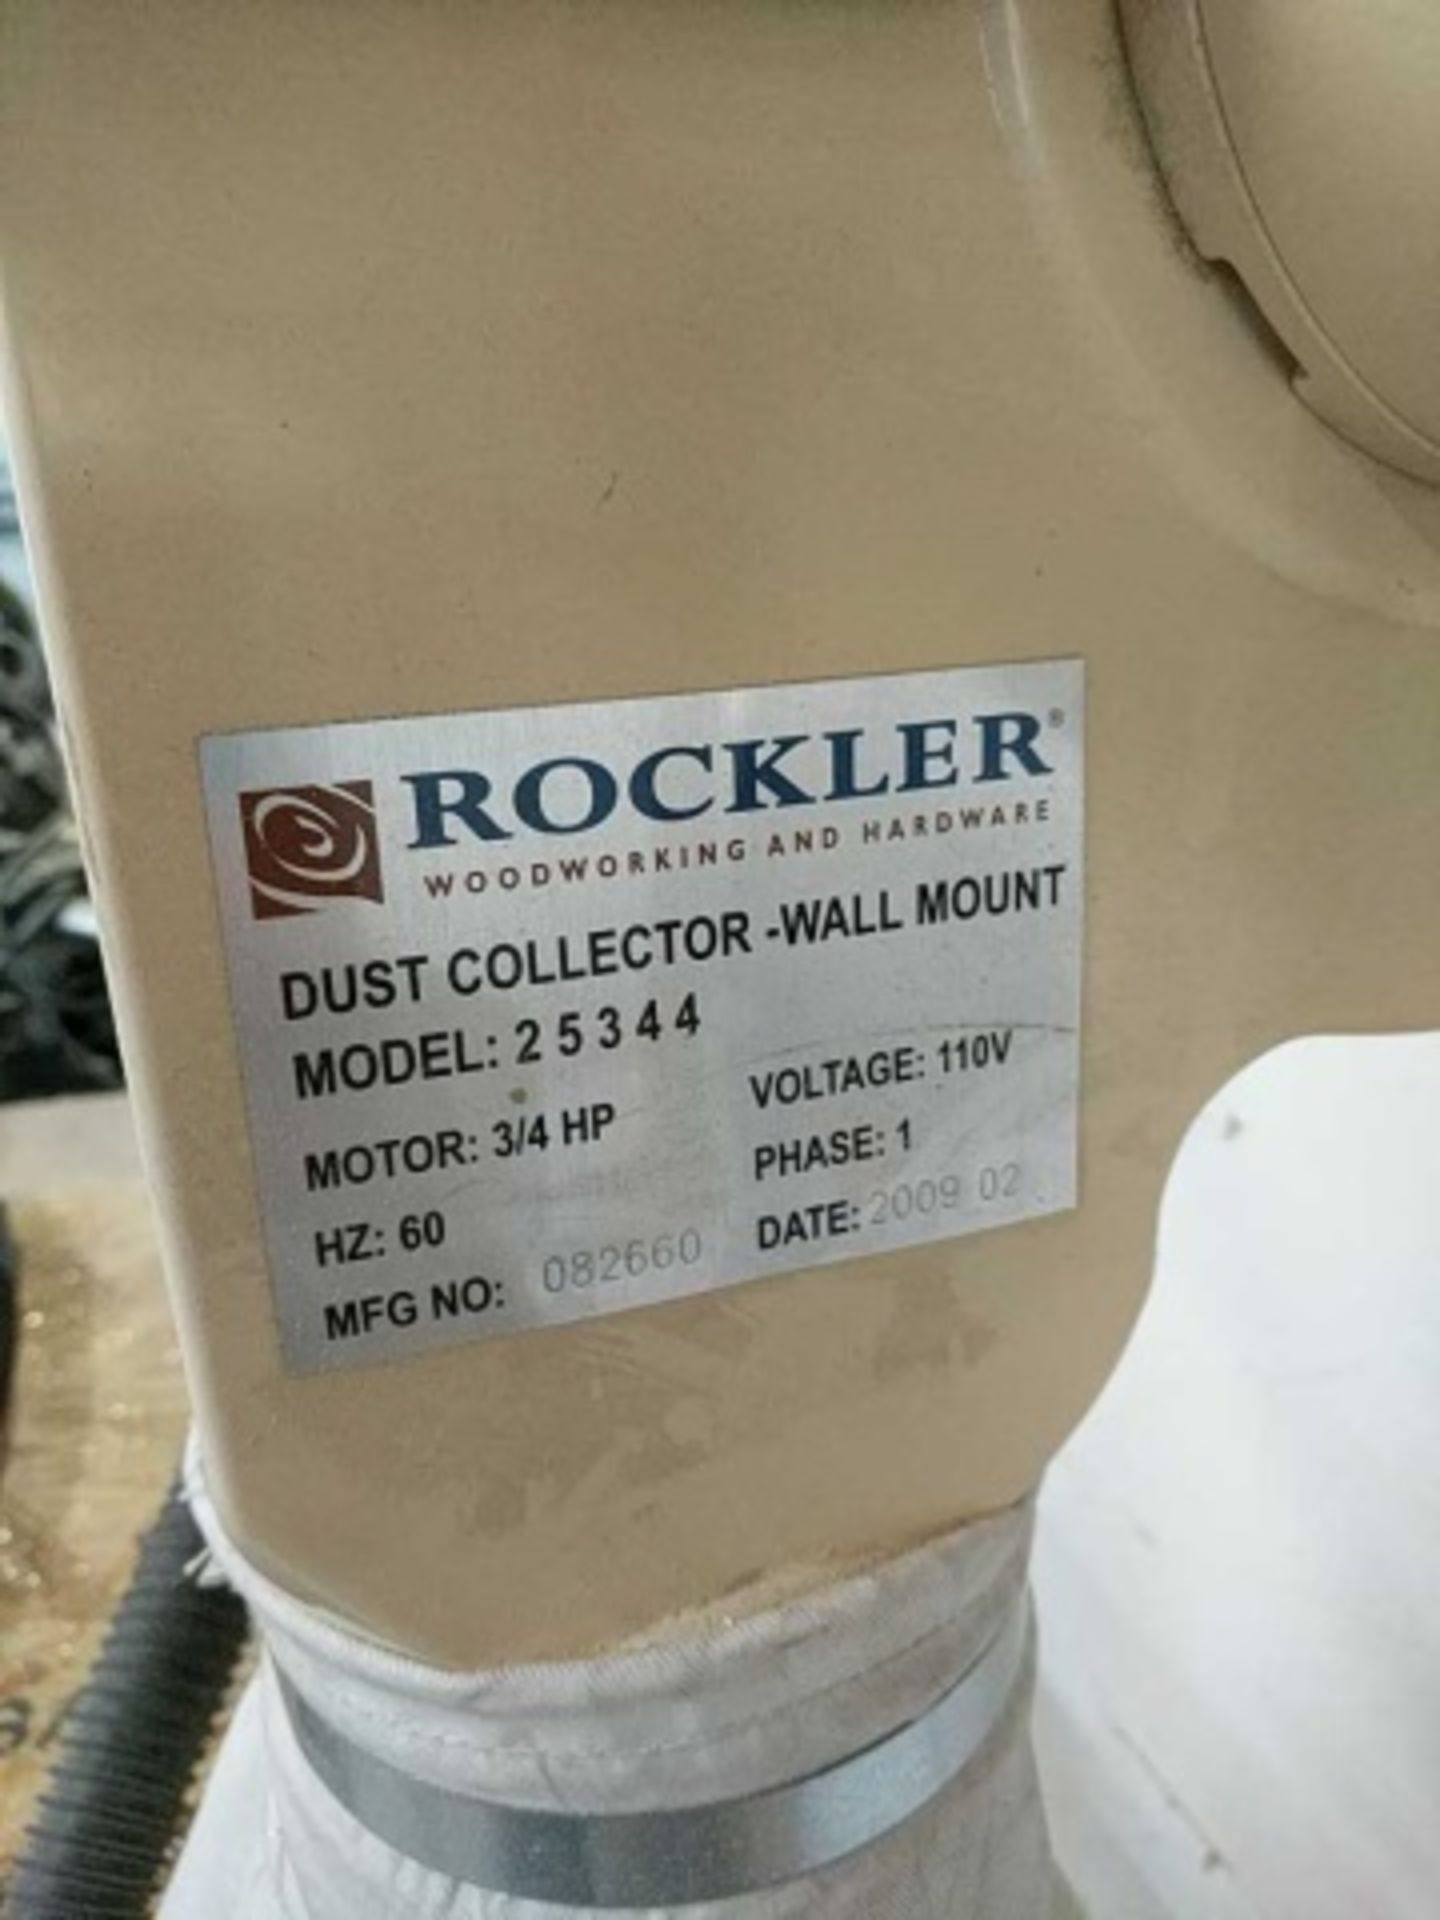 Rockler 25344 Dust Collector - Image 2 of 4